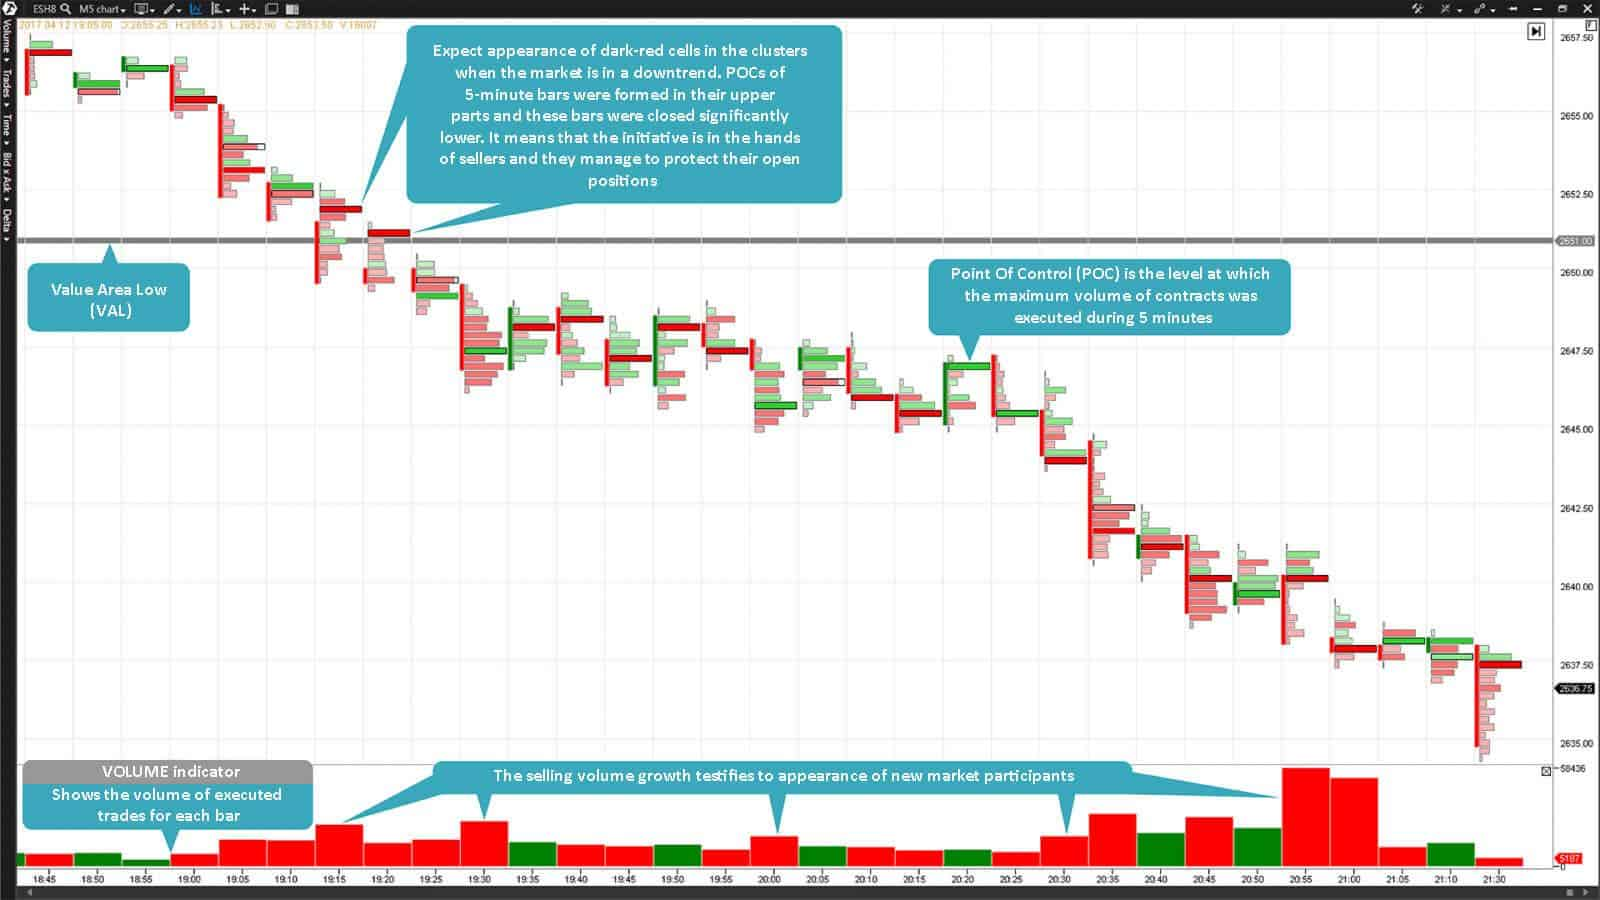 E-mini S&P 500 futures Footprint with the 5-minute time-frame